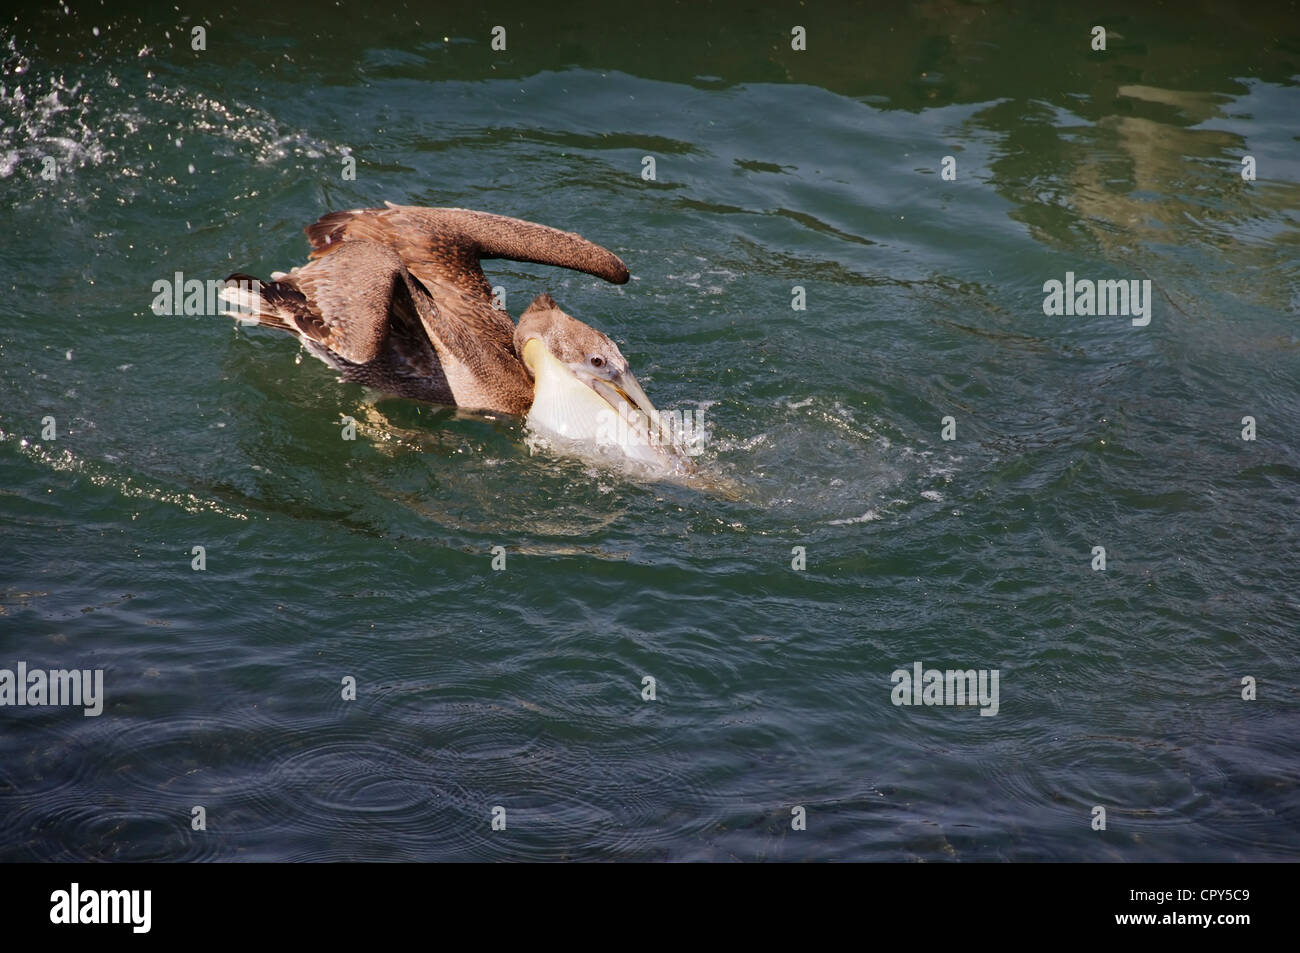 A pelican fills his gular throat pouch with fish and saltwater as he plunges into Banderas Bay in Nayarit, Mexico. - Stock Image